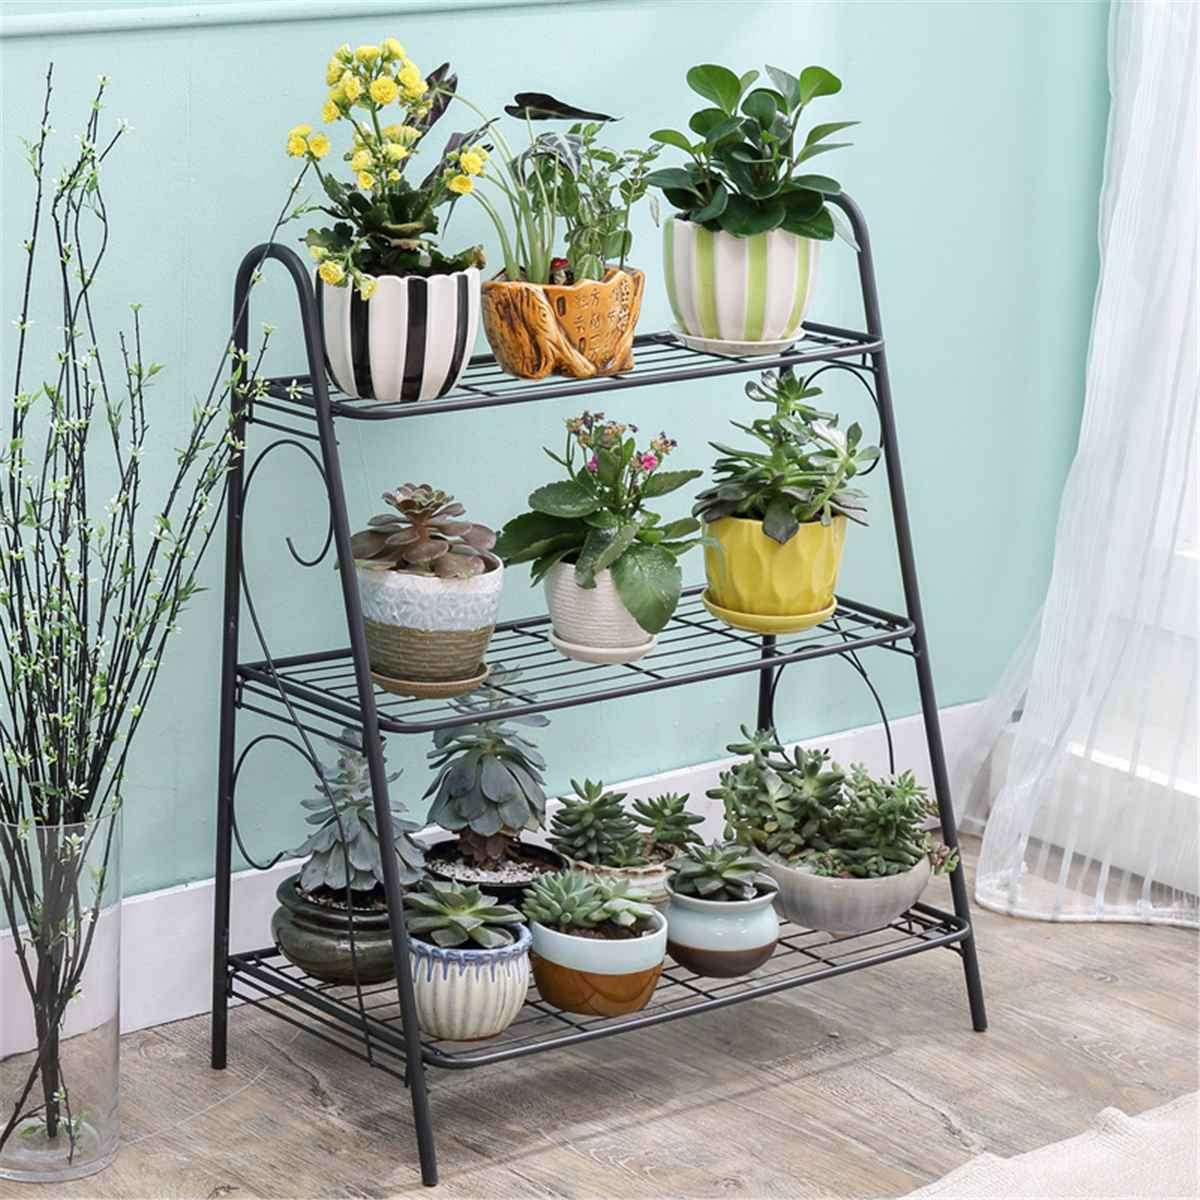 Iron 3-layers Plant Stand Succulent Shelf Rack Balcony Simple Indoor Garden Flower Pot Shelf Shoes Rack Book Shelf Home Decor